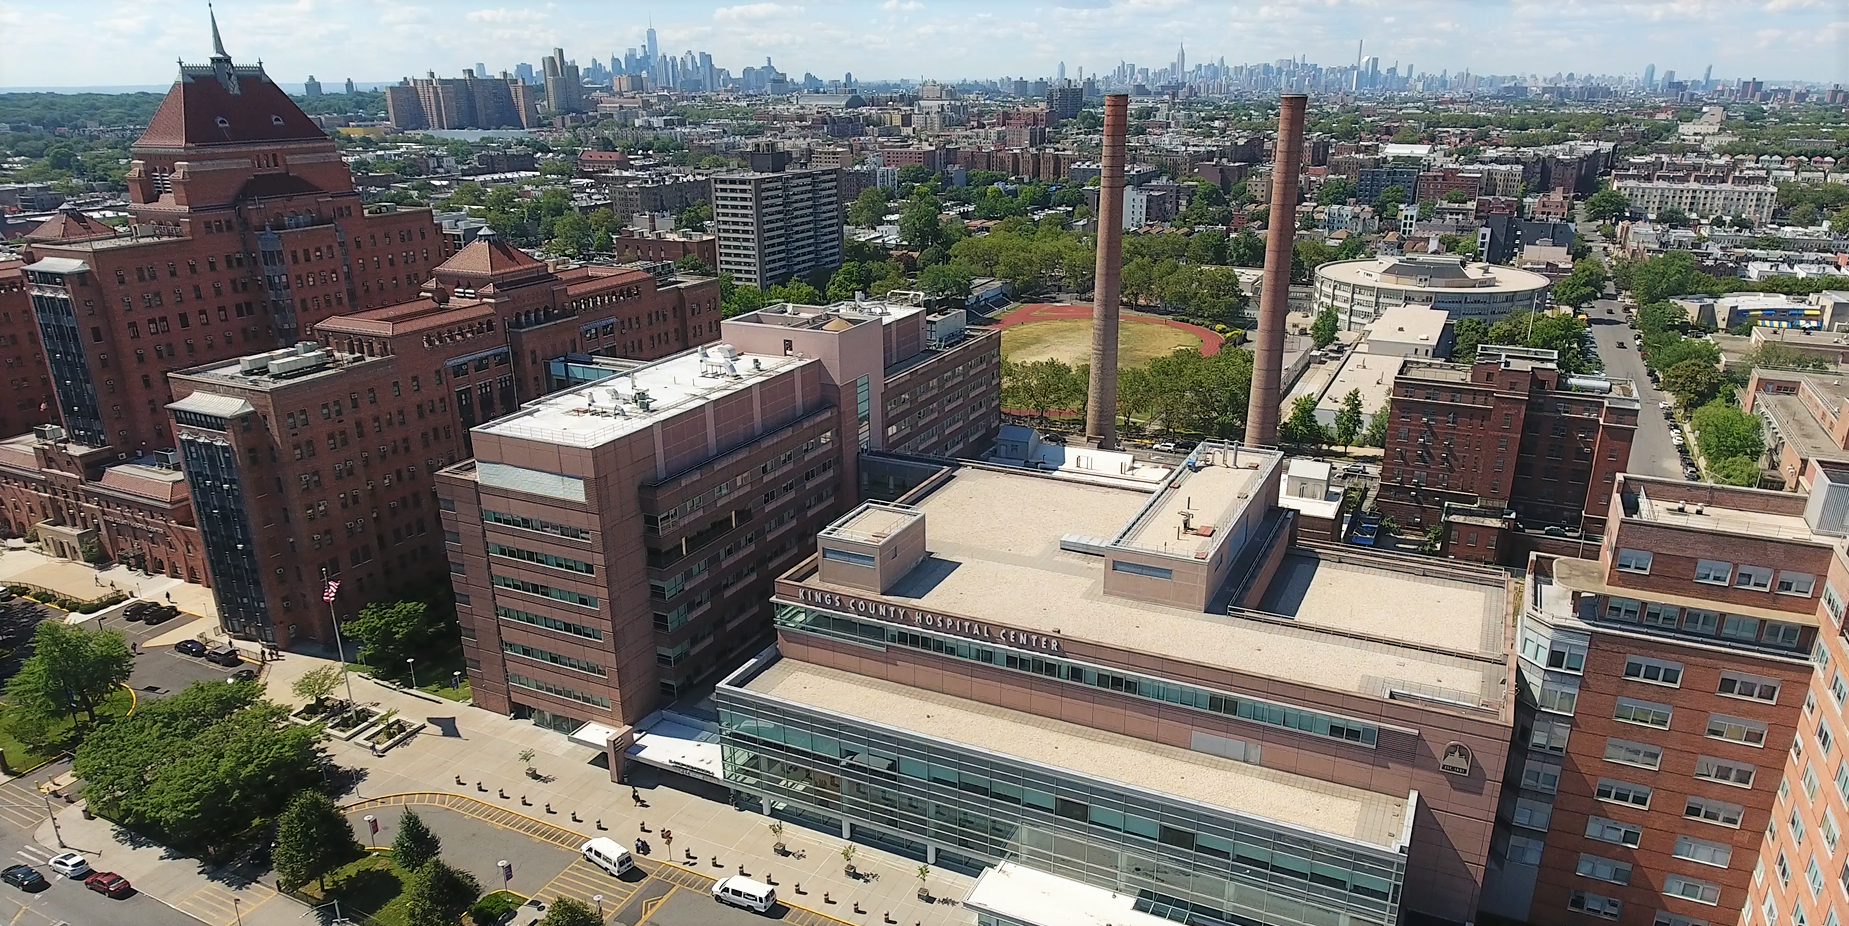 SUNY Downstate Medical Center - HVAC Upgrades to Bronchoscopy Suite